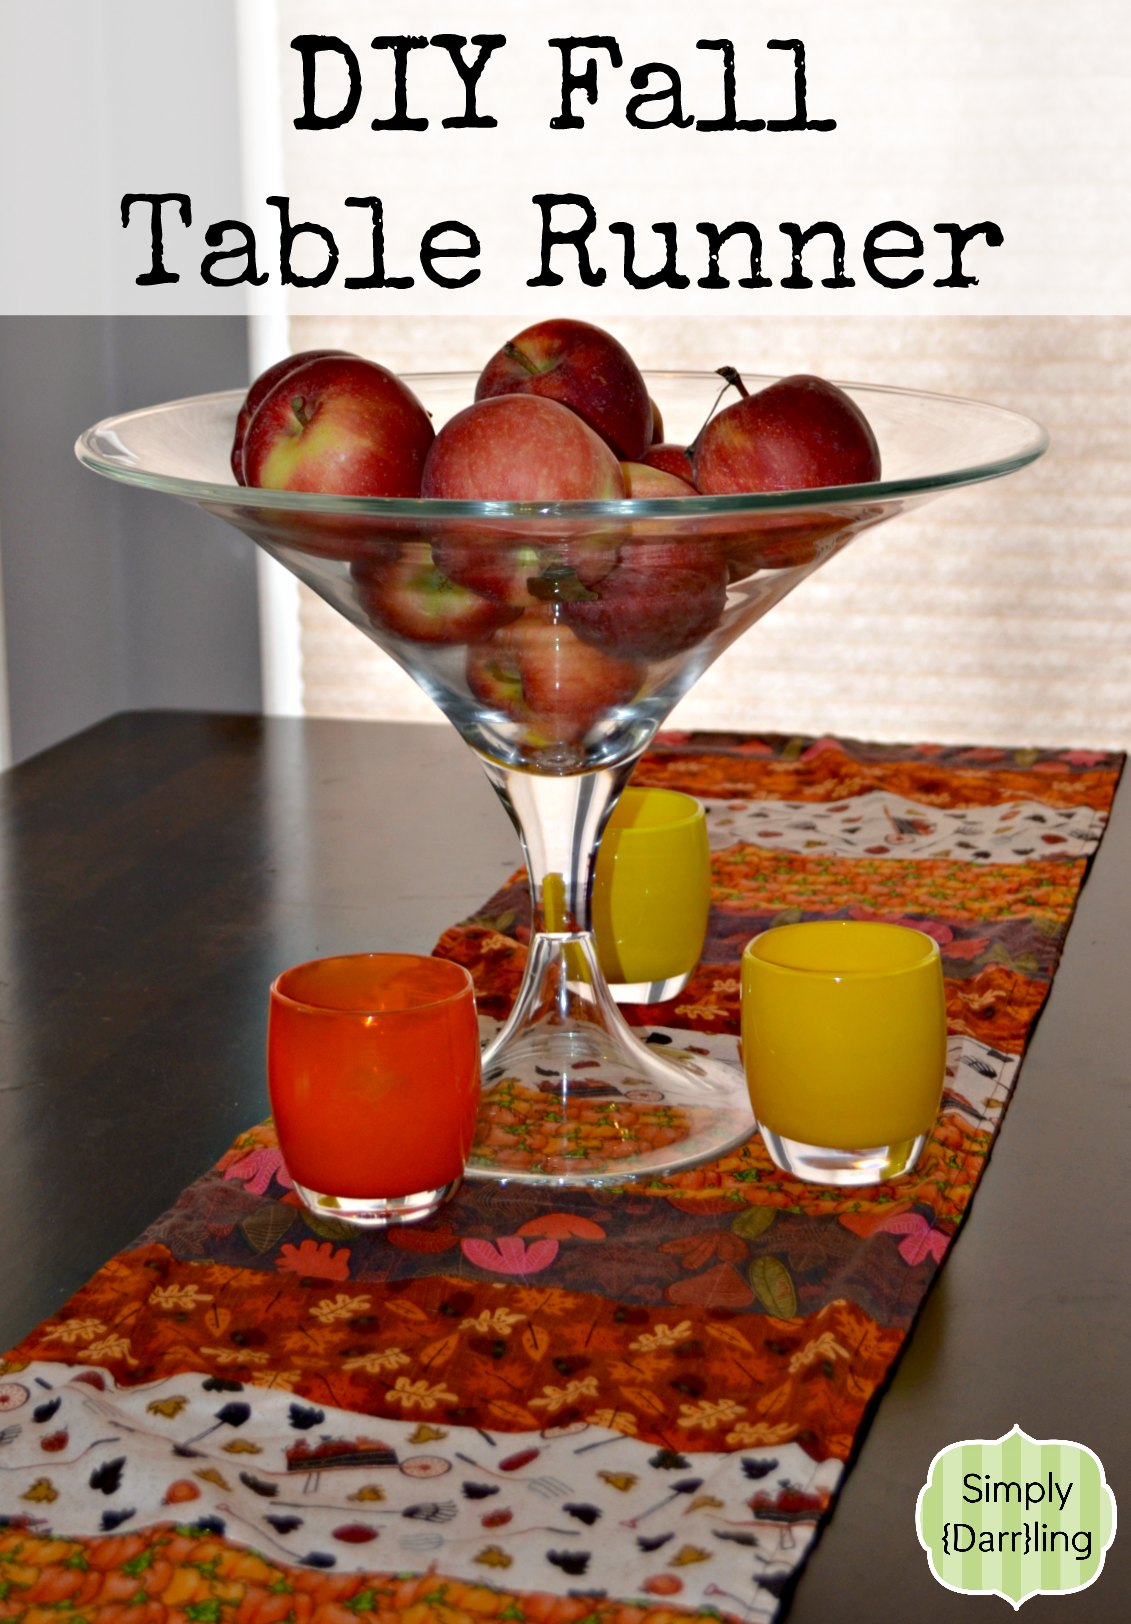 diy fall table runner simply darr ling